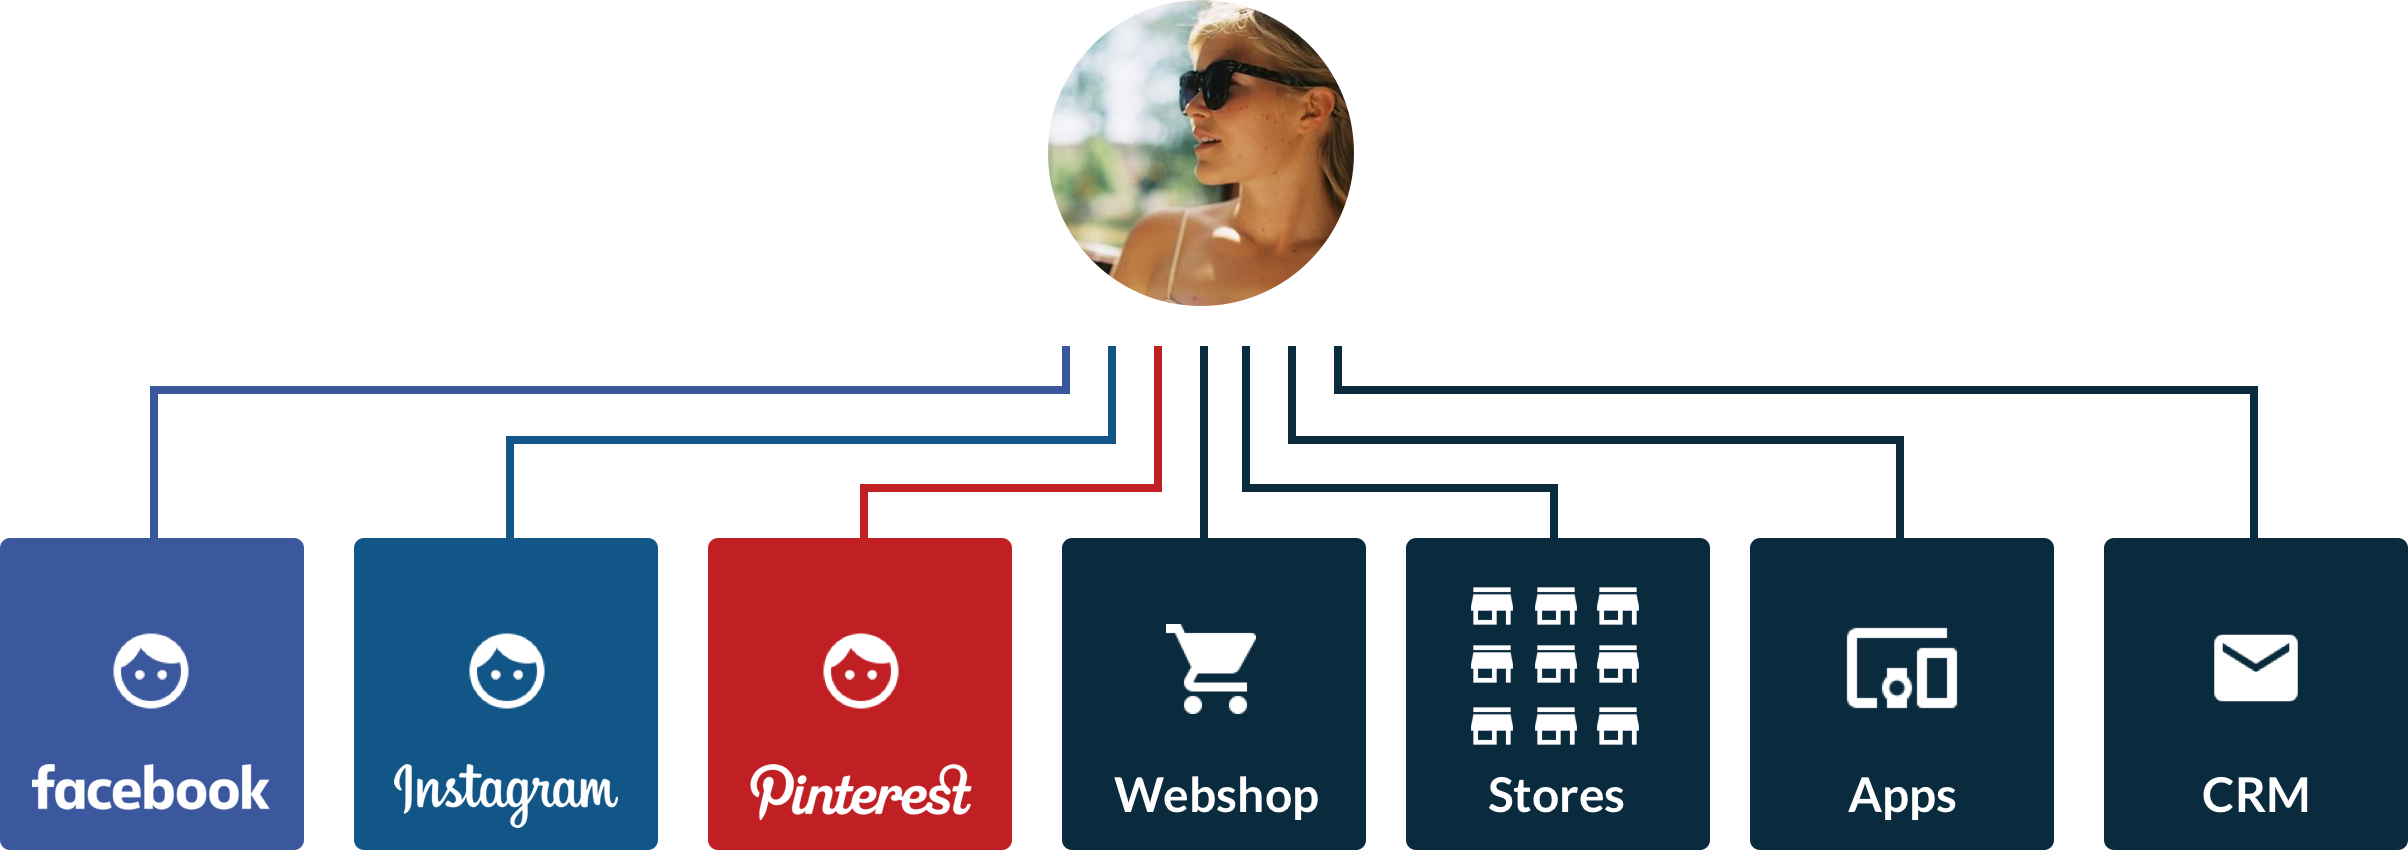 Customer Platform - unify data to understand, serve and market to ...